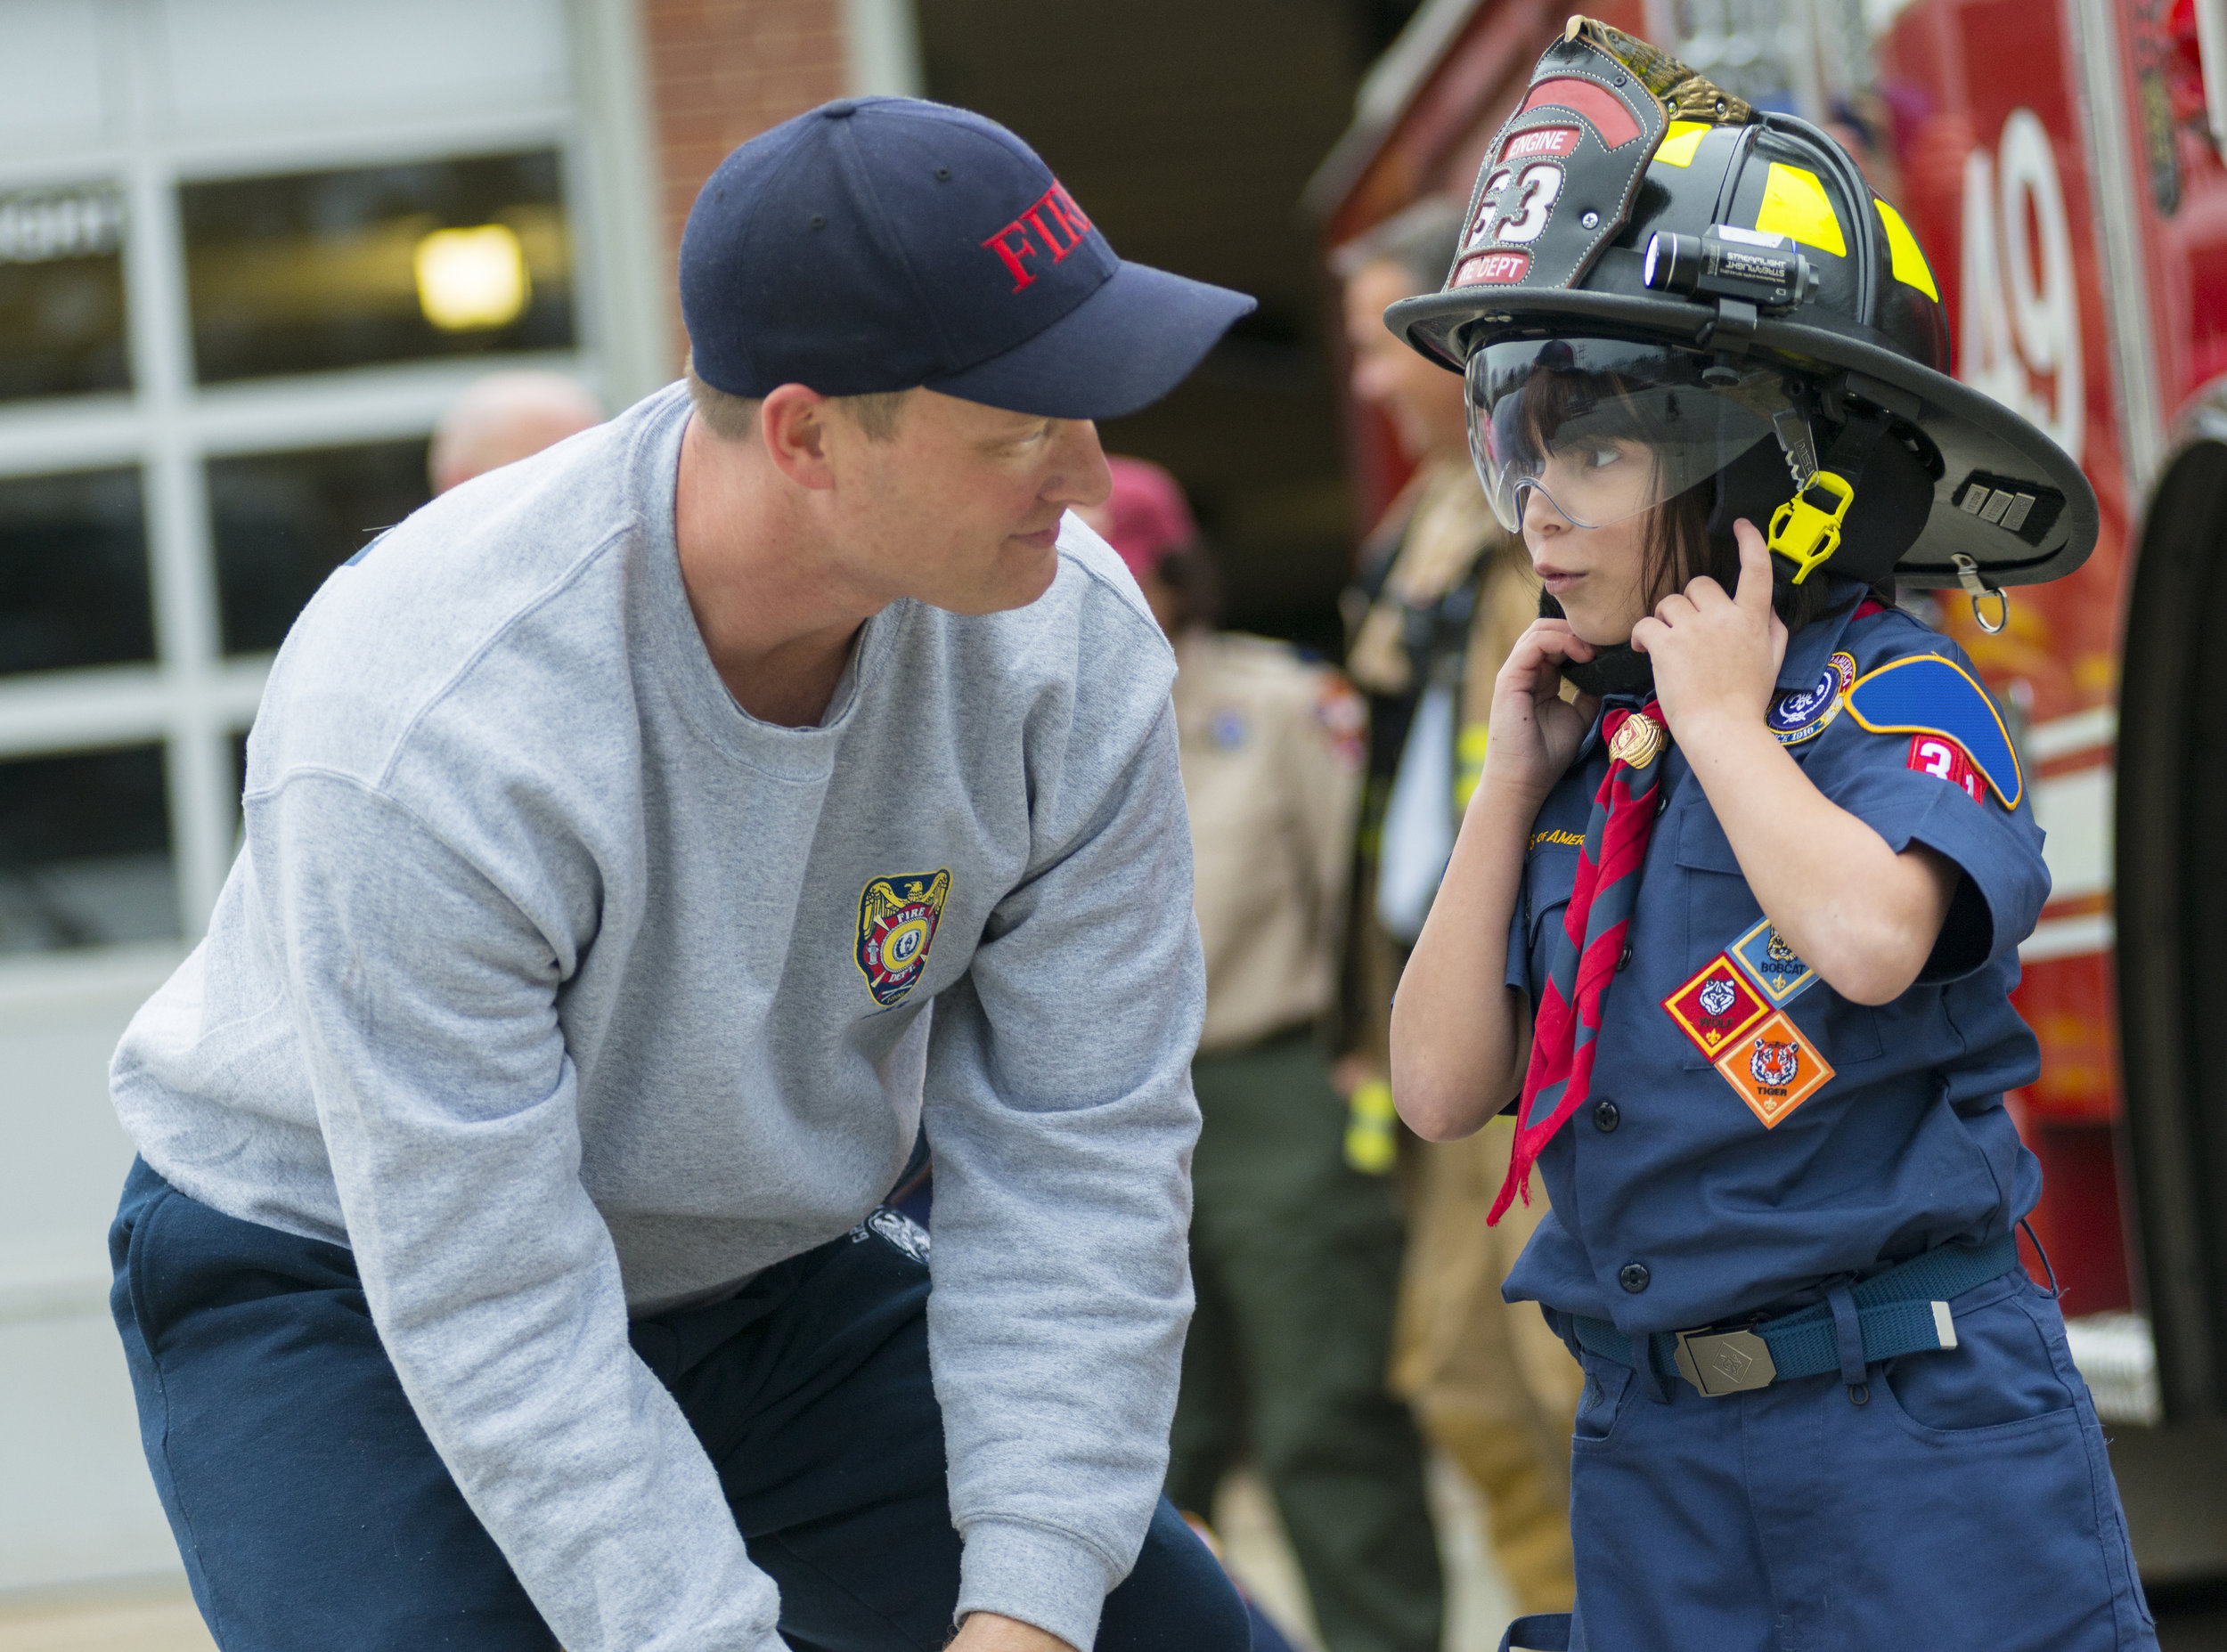 Everyone is Invited to Join Cub Scouts - Providing Programs for the Whole Family